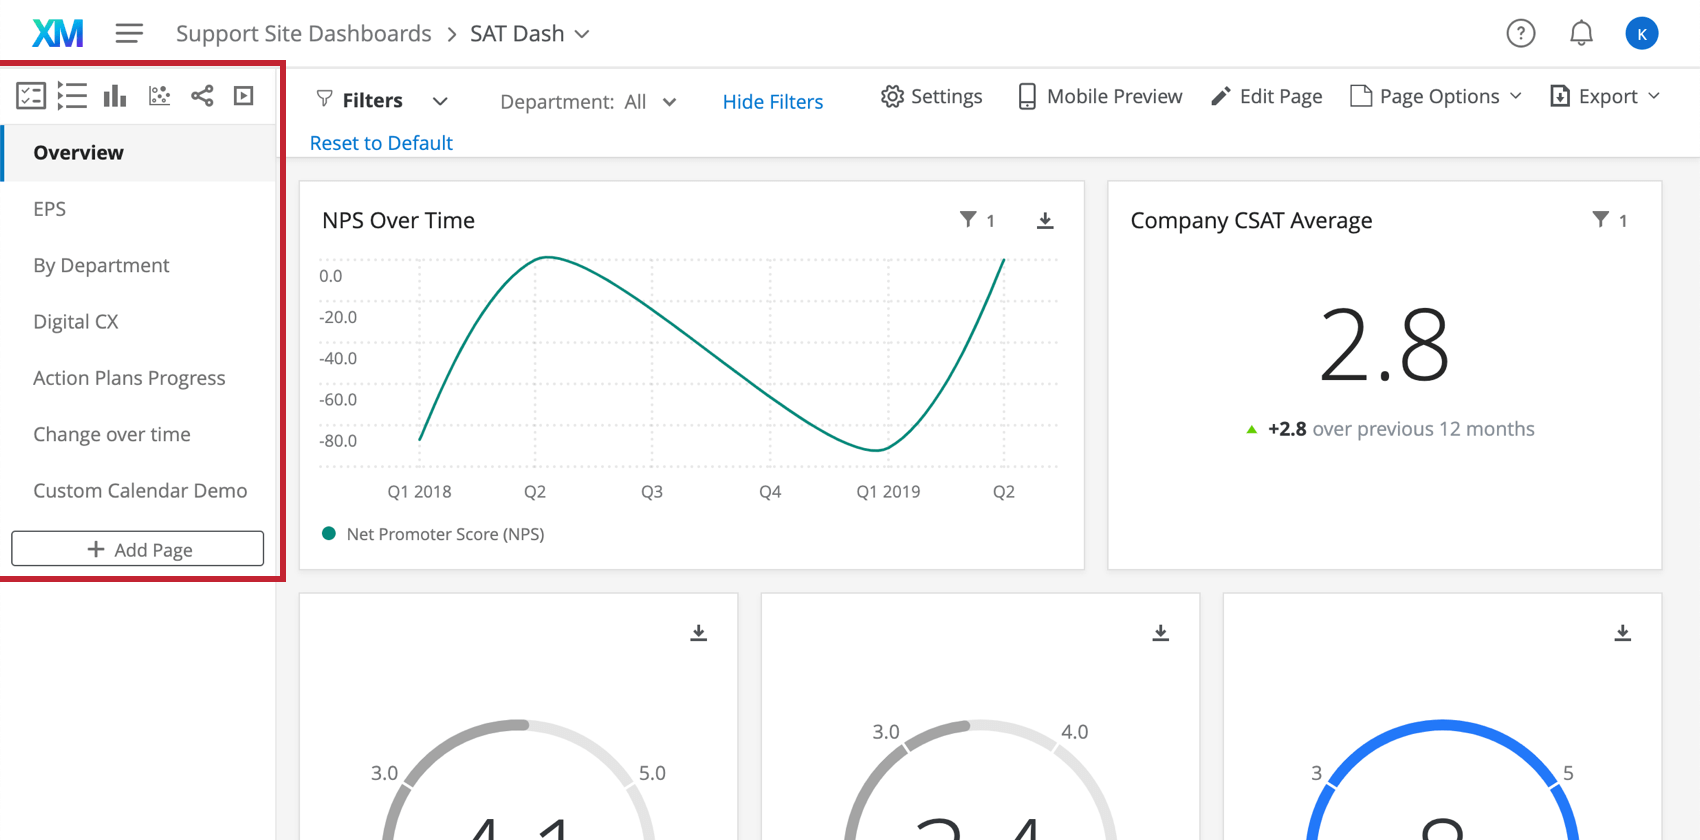 Image of a dashboard where the pages are along the left